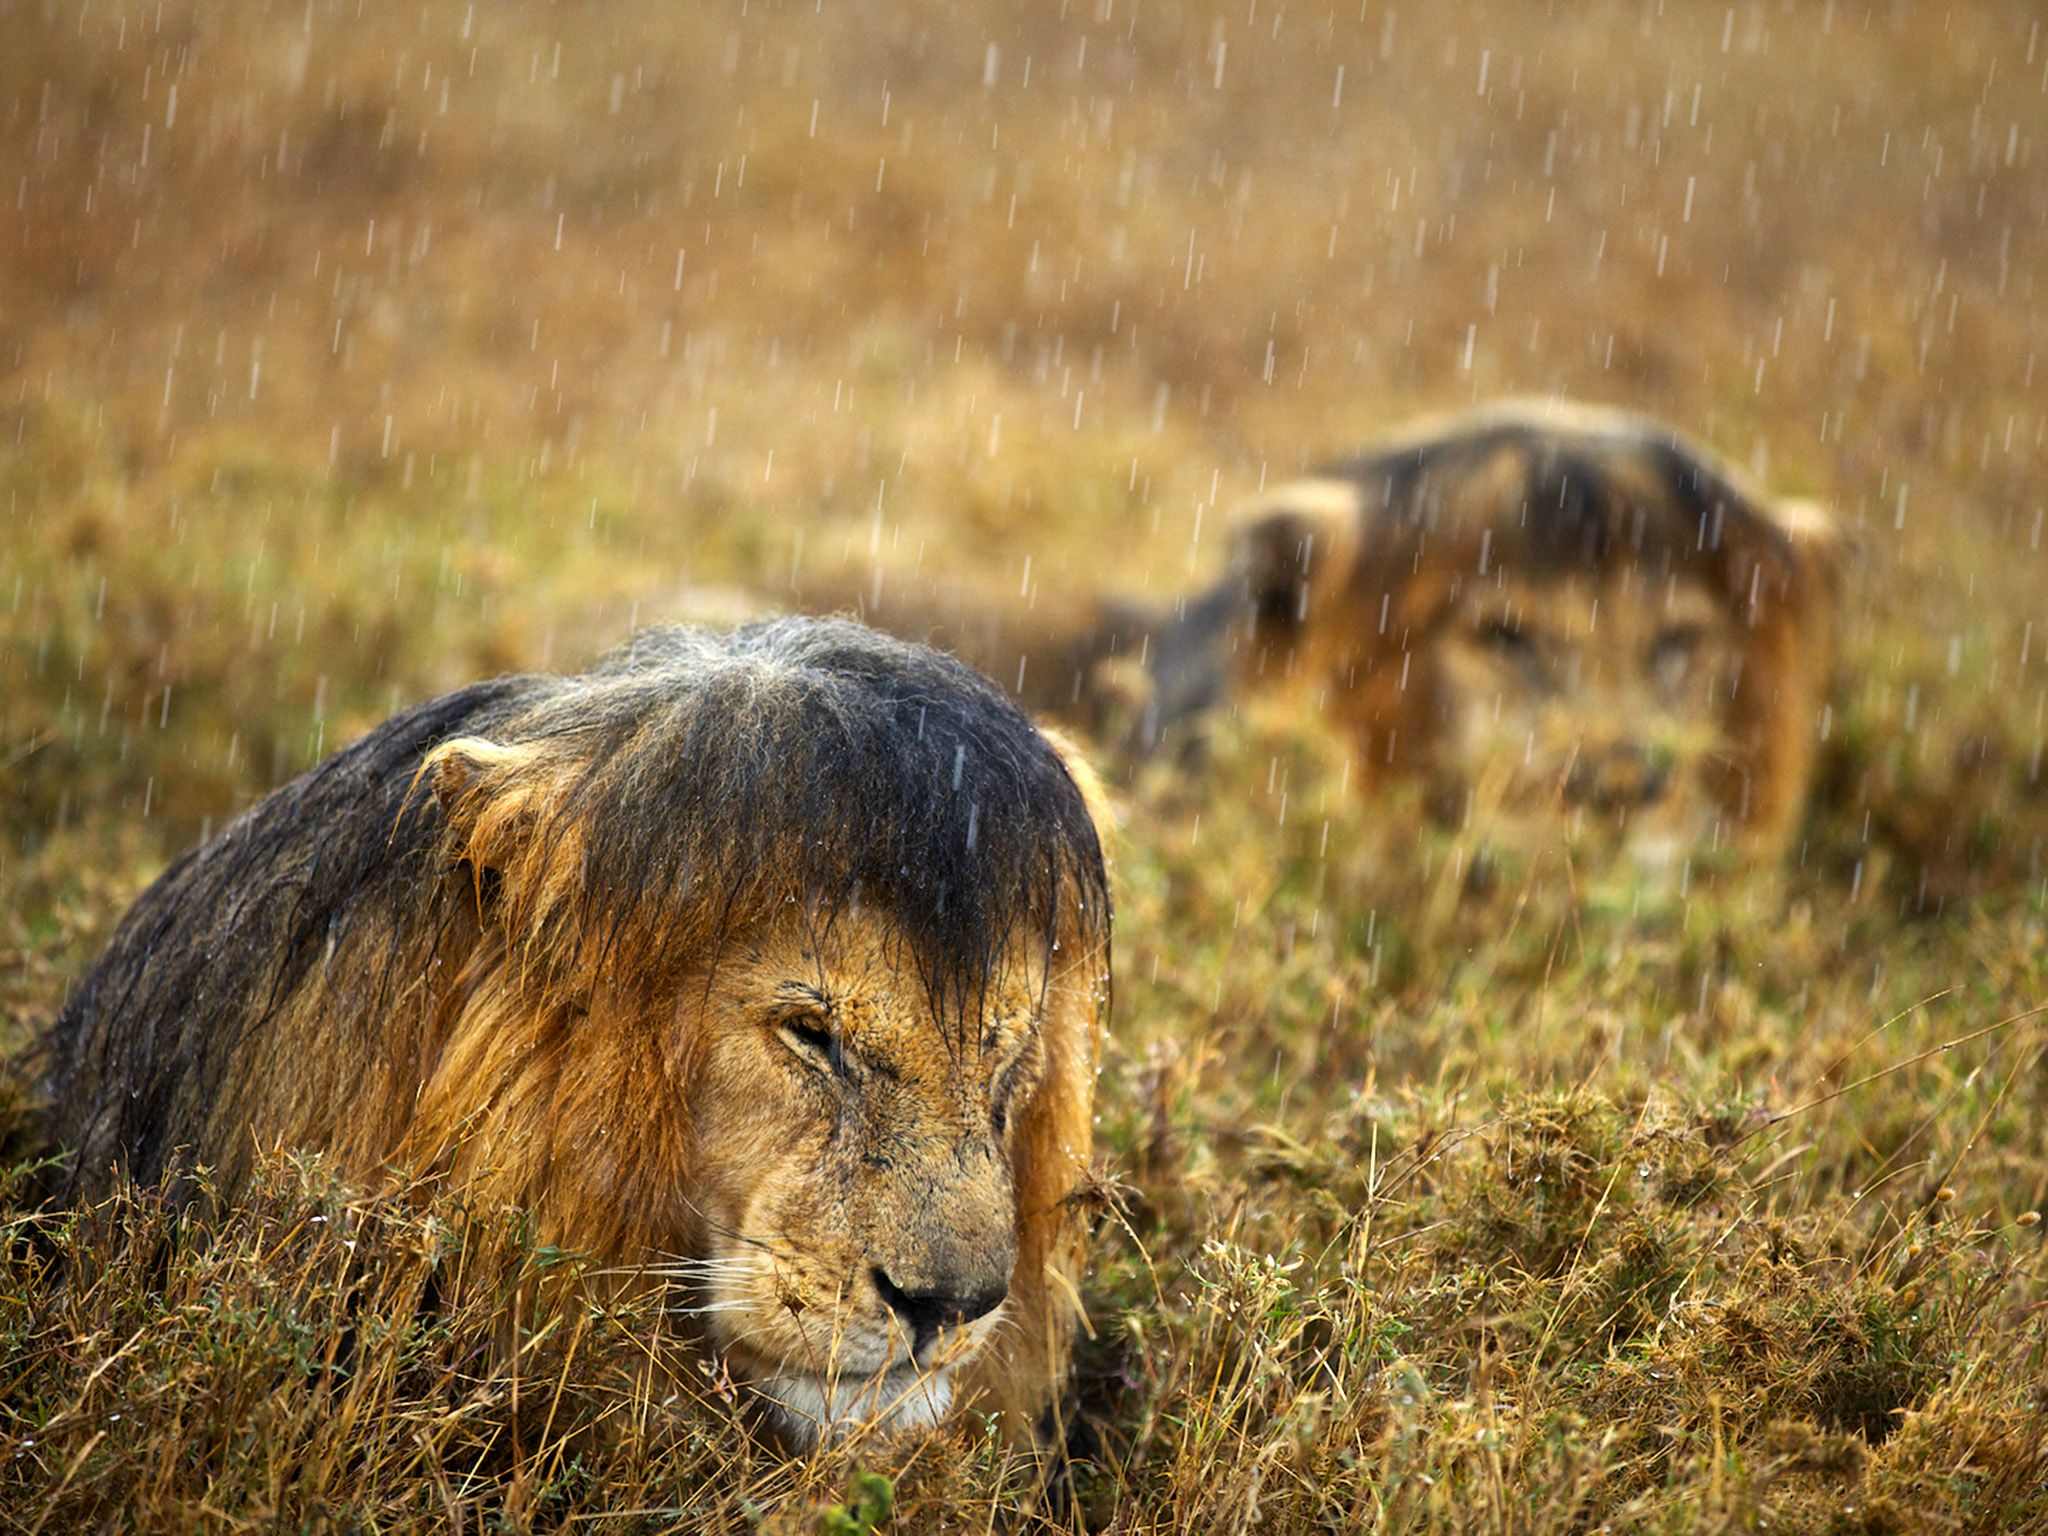 Lions getting soaked by the rain in Serengeti National Park, Tanzania. This image is from Lion... [Photo of the day - February 2015]